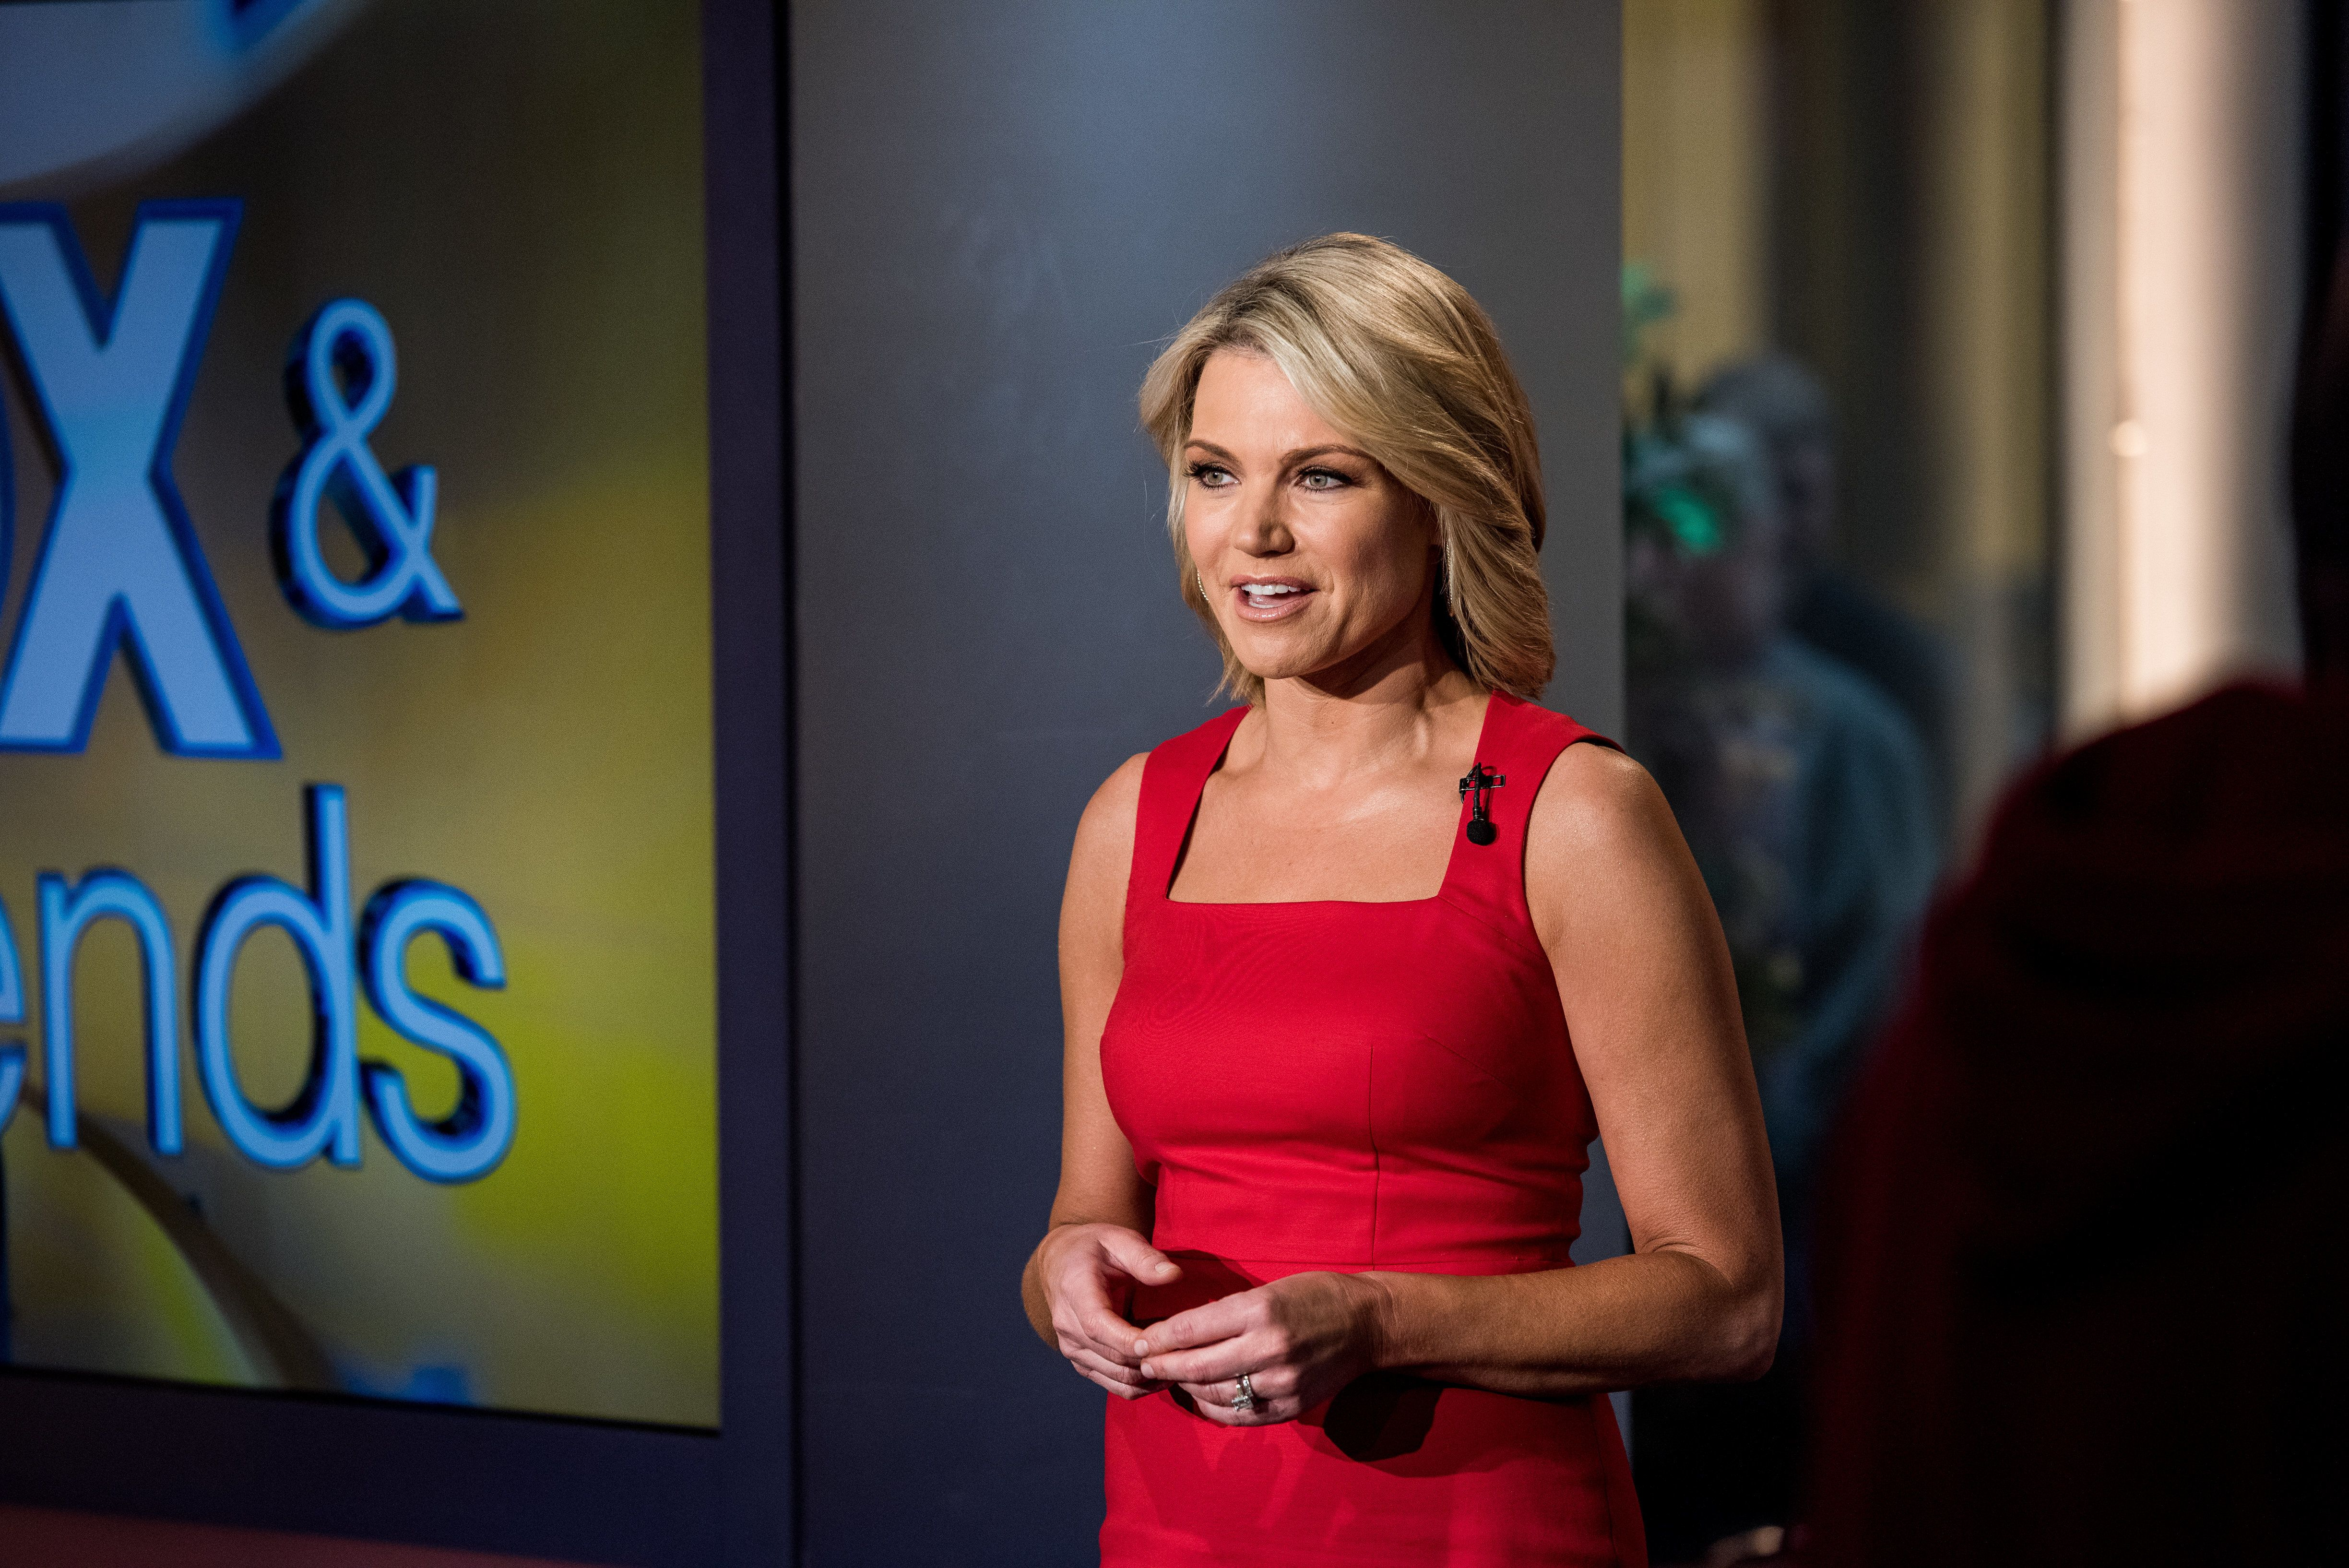 Fox Newscaster Heather Nauert tells the news during 'Fox & Friends' at FOX Studios on May 5, 2016 in New York City. (Phot